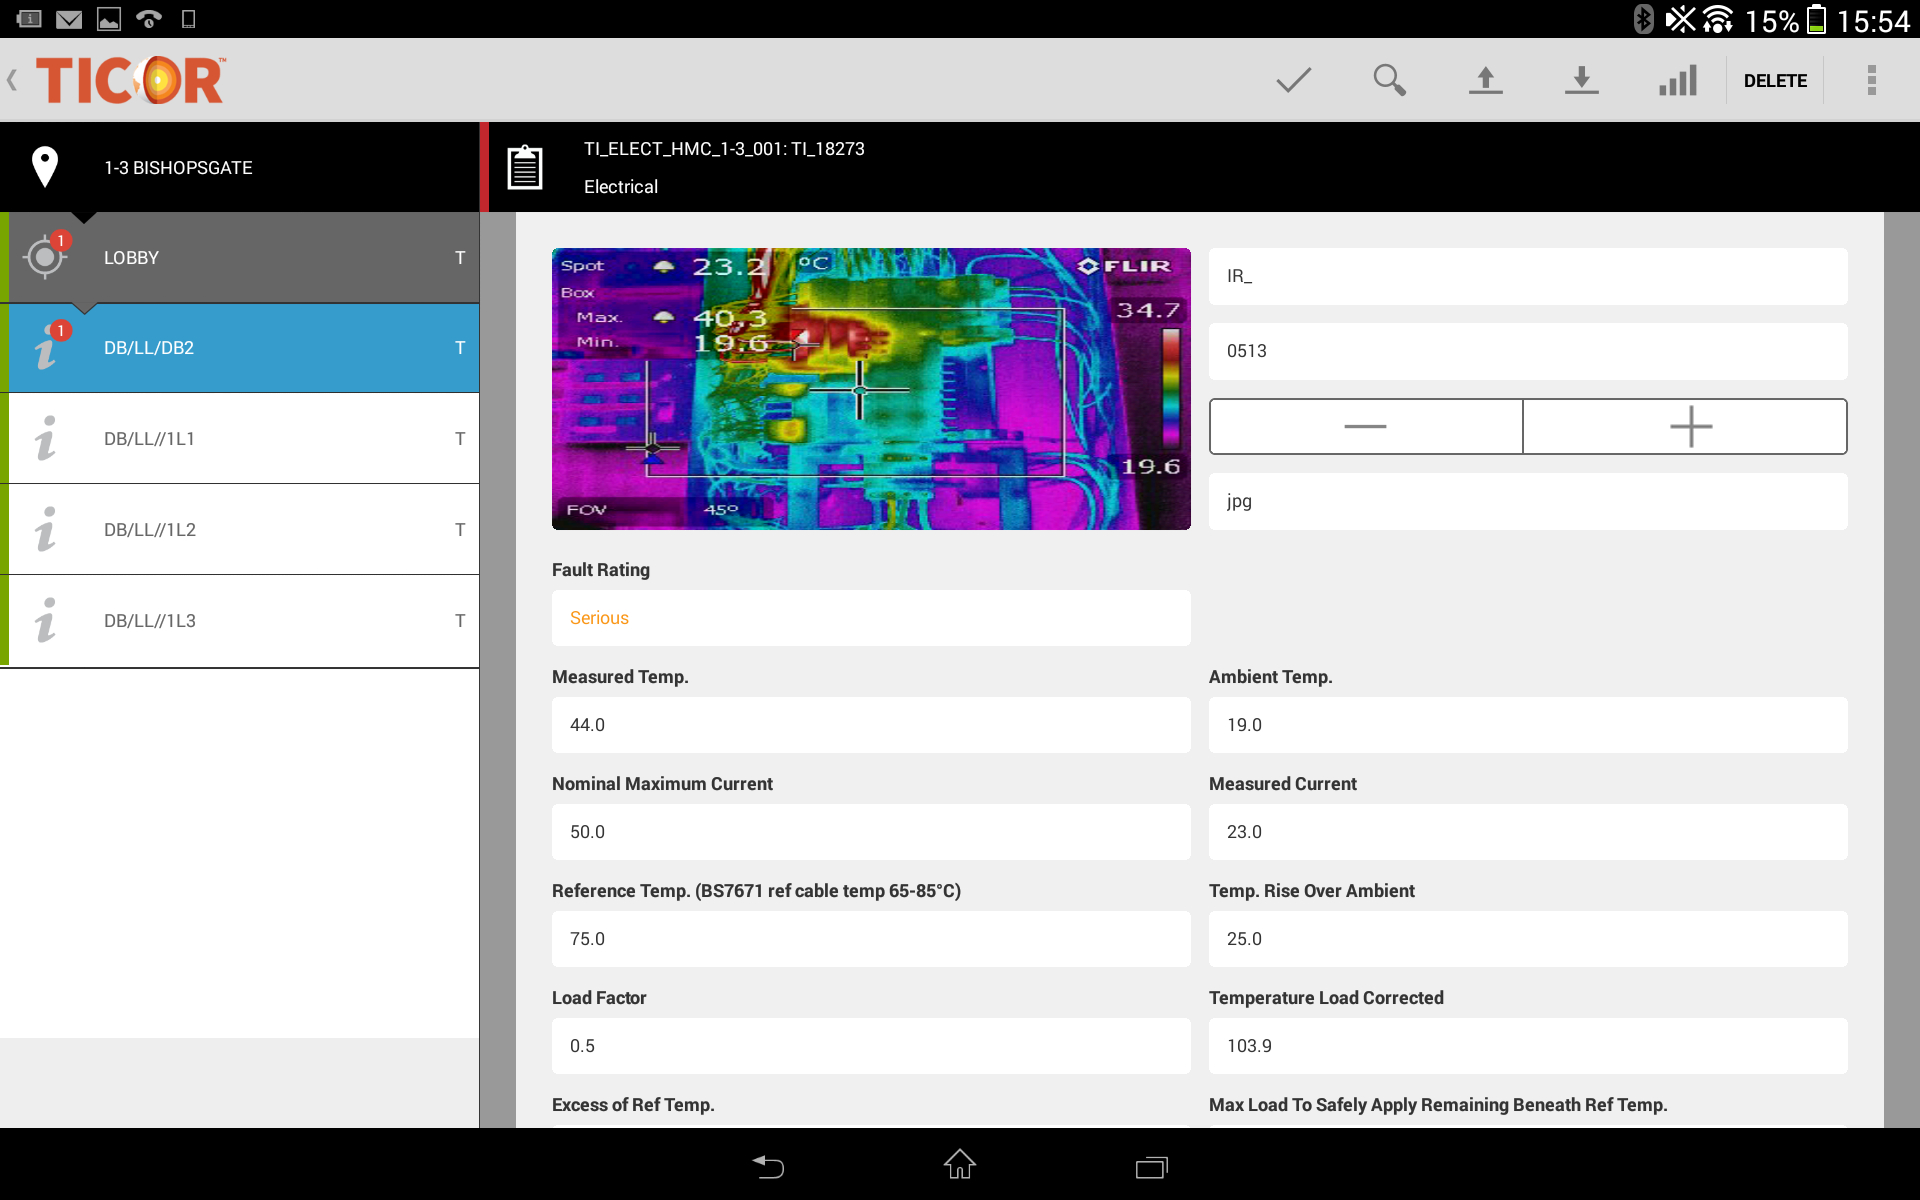 Thermal Imaging Software - Ticor For Thermal Imaging Report Template